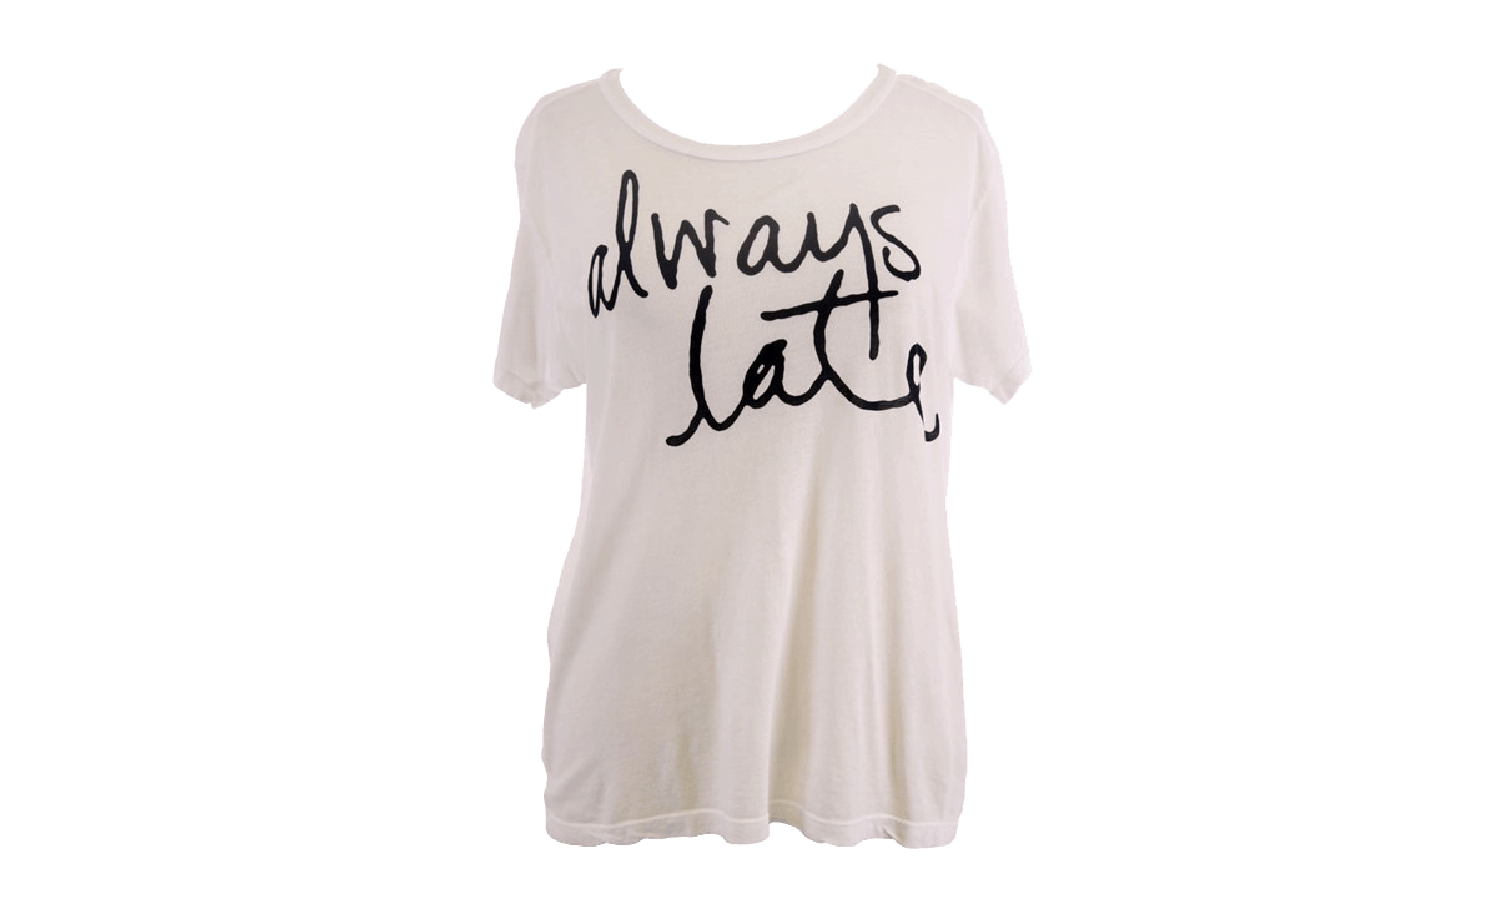 "An off-white tshirt that says ""Always Late"" in a cursive black font"